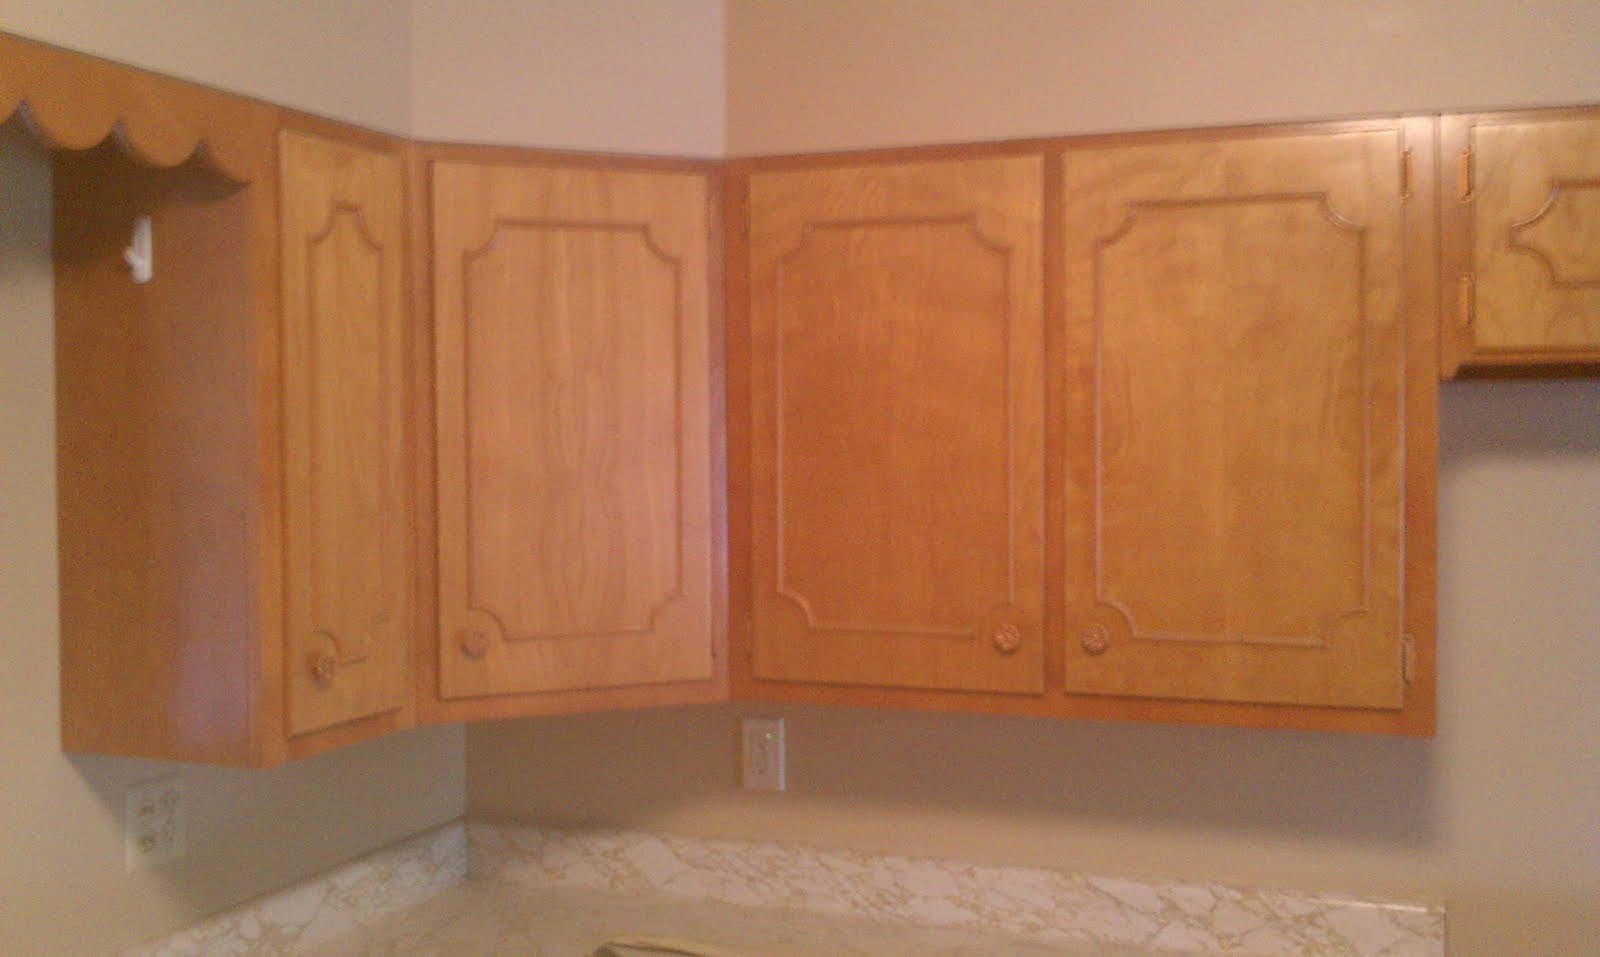 The extraordinary How to refacing kitchen cabinets pics